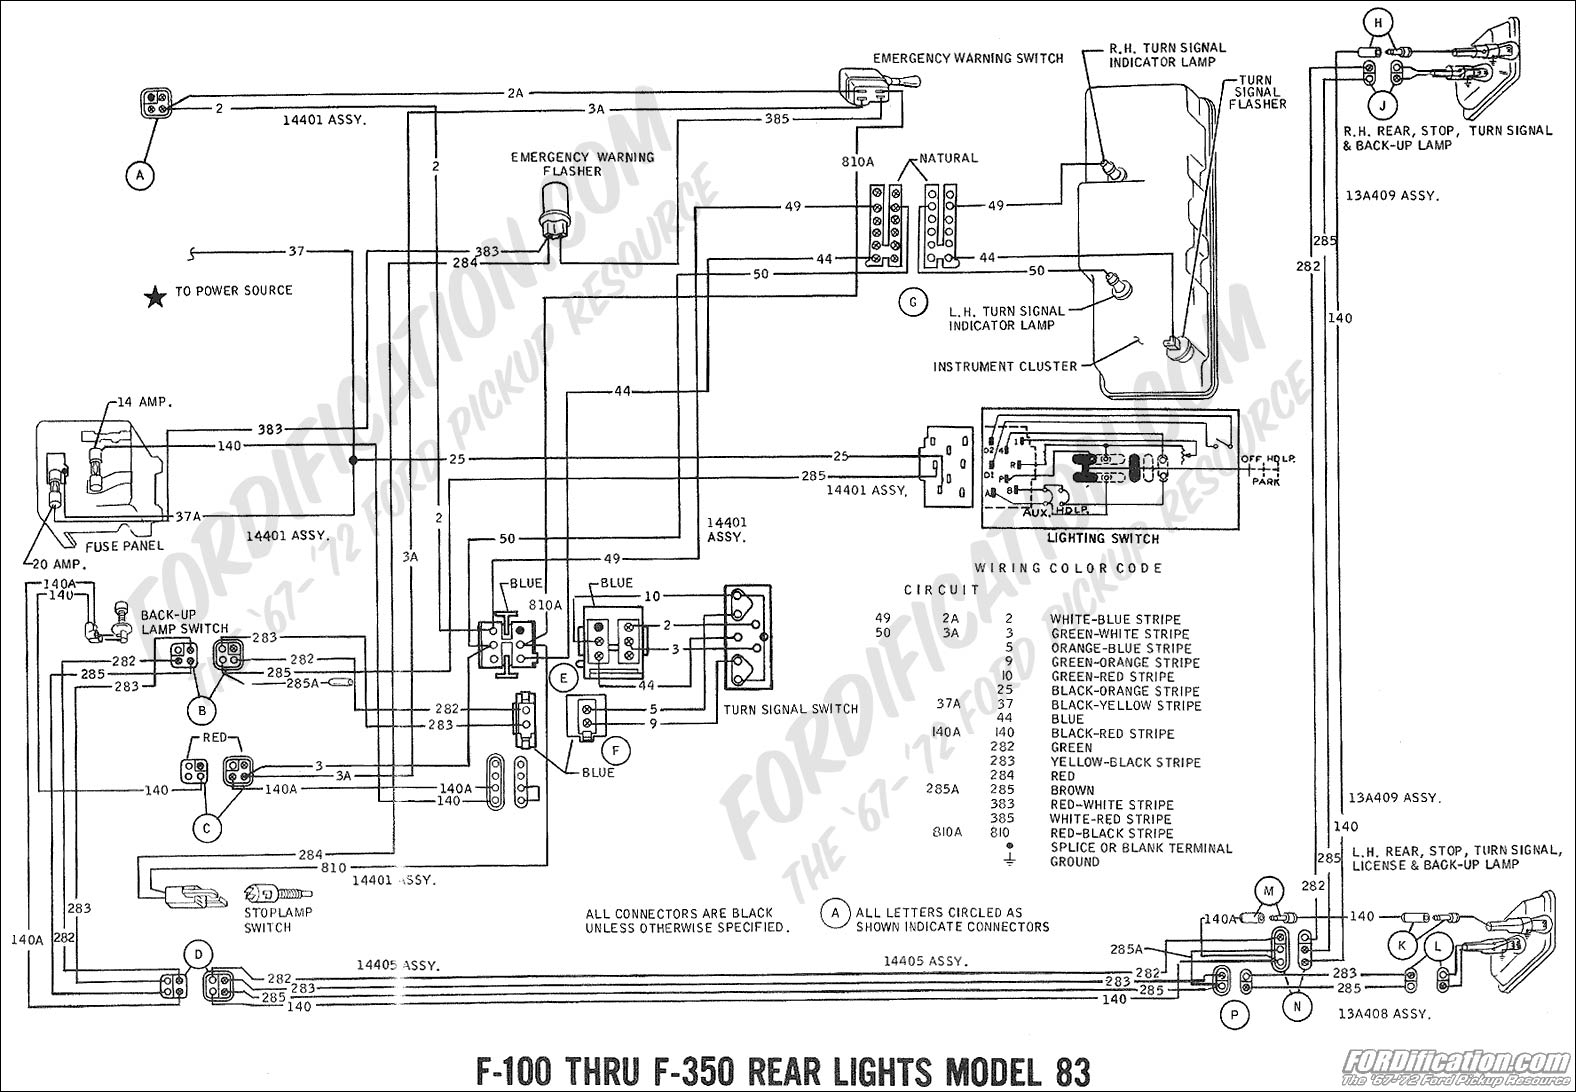 Ford Wiring Harness For Vans - Wiring Diagram Data - Ford Alternator Wiring Diagram